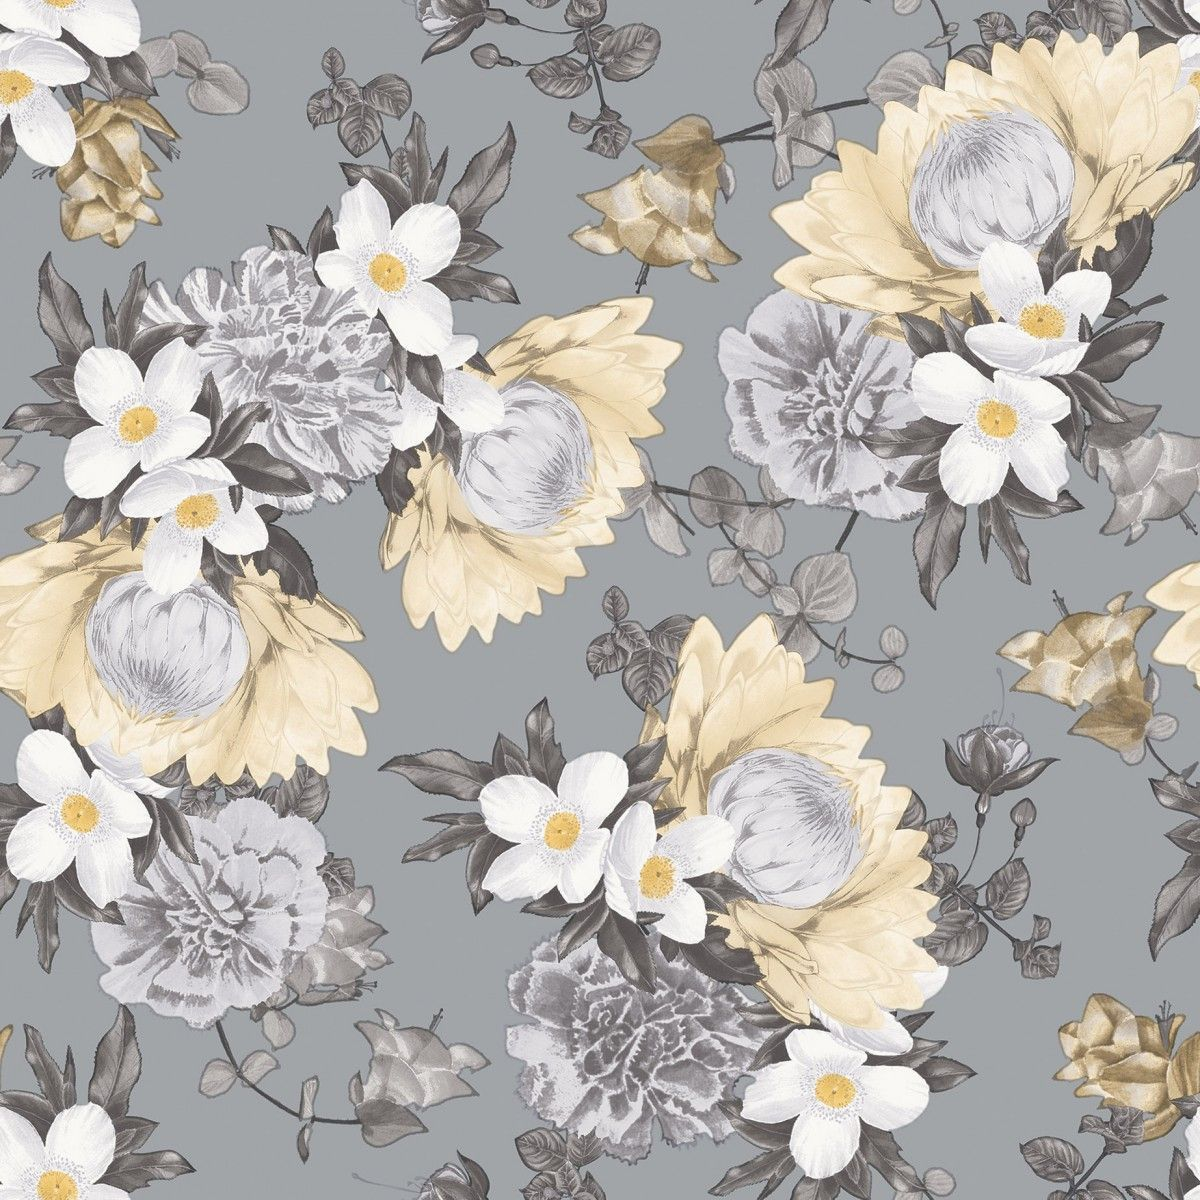 Botanical Self Adhesive Wallpaper in Pale Yellow design by